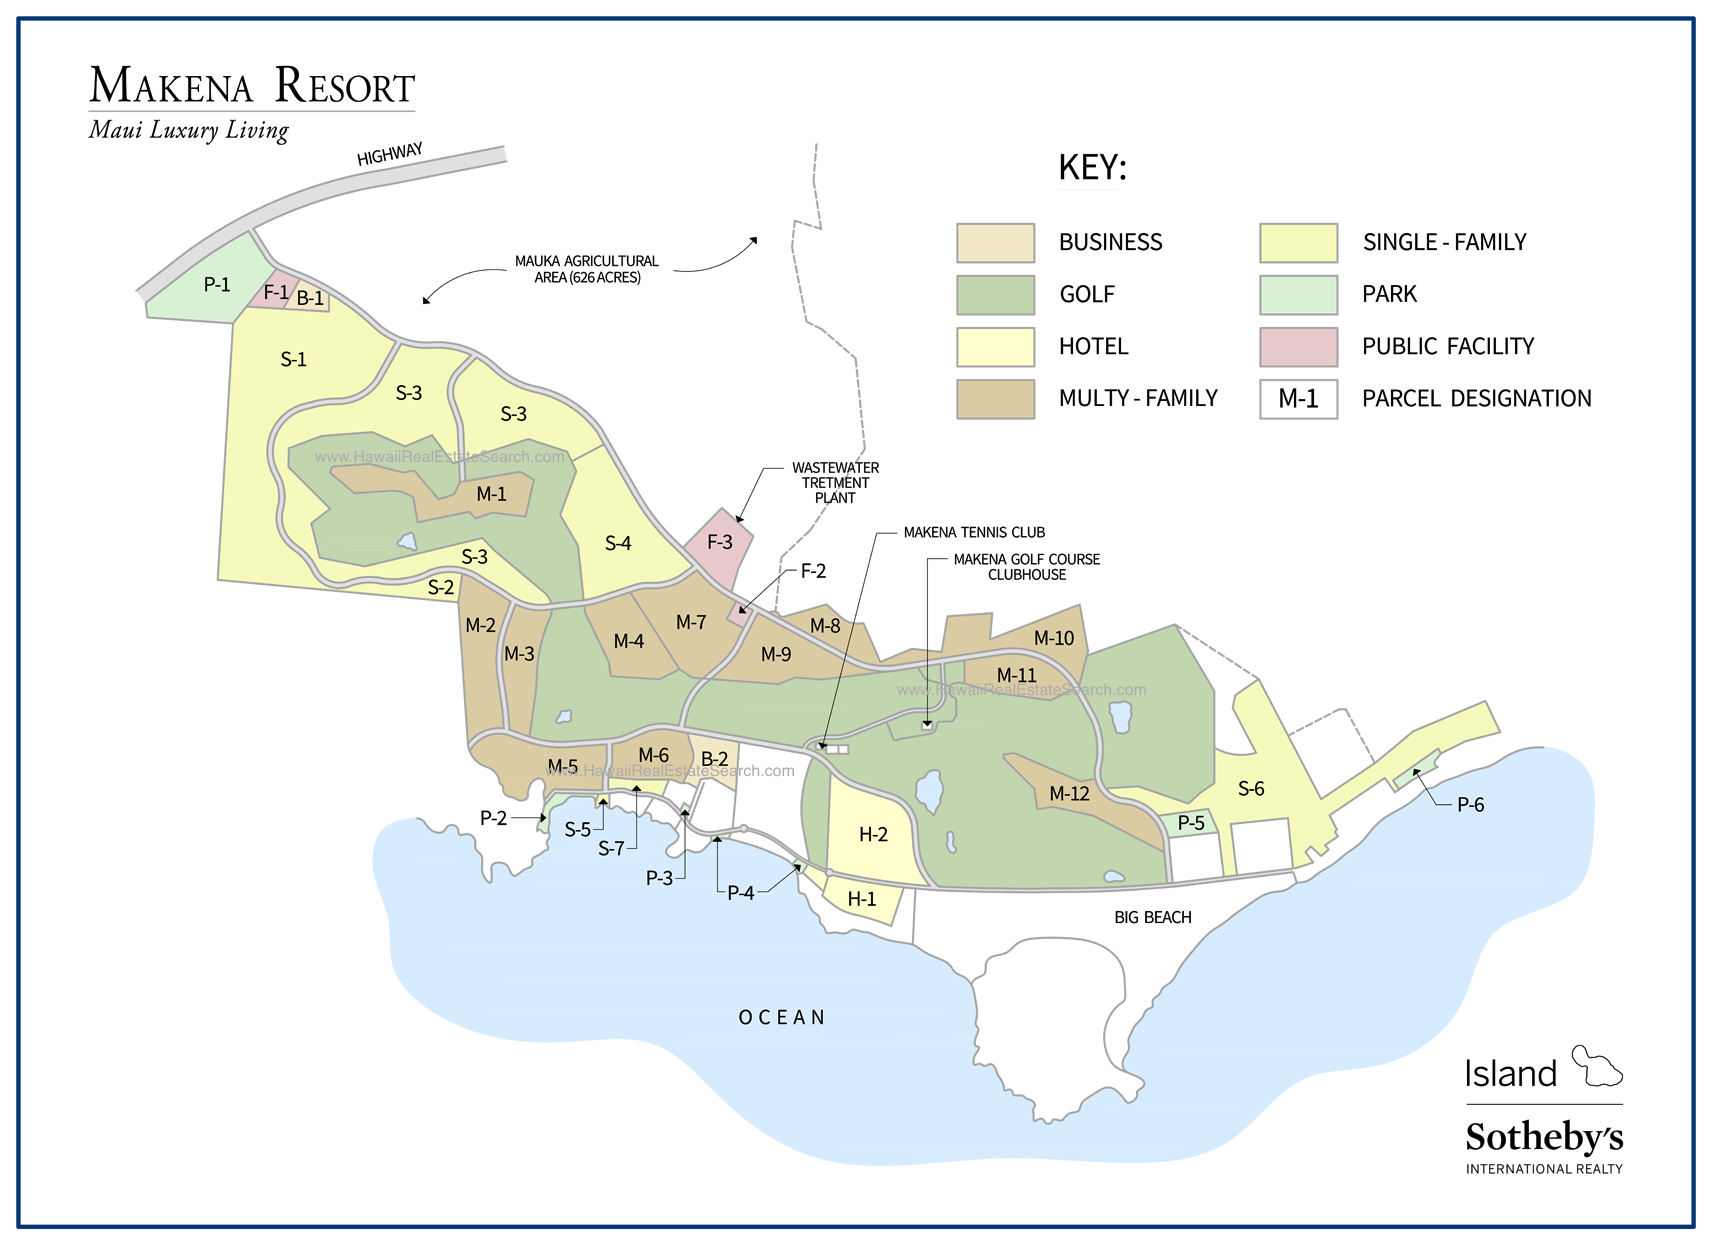 makena resort map 2018